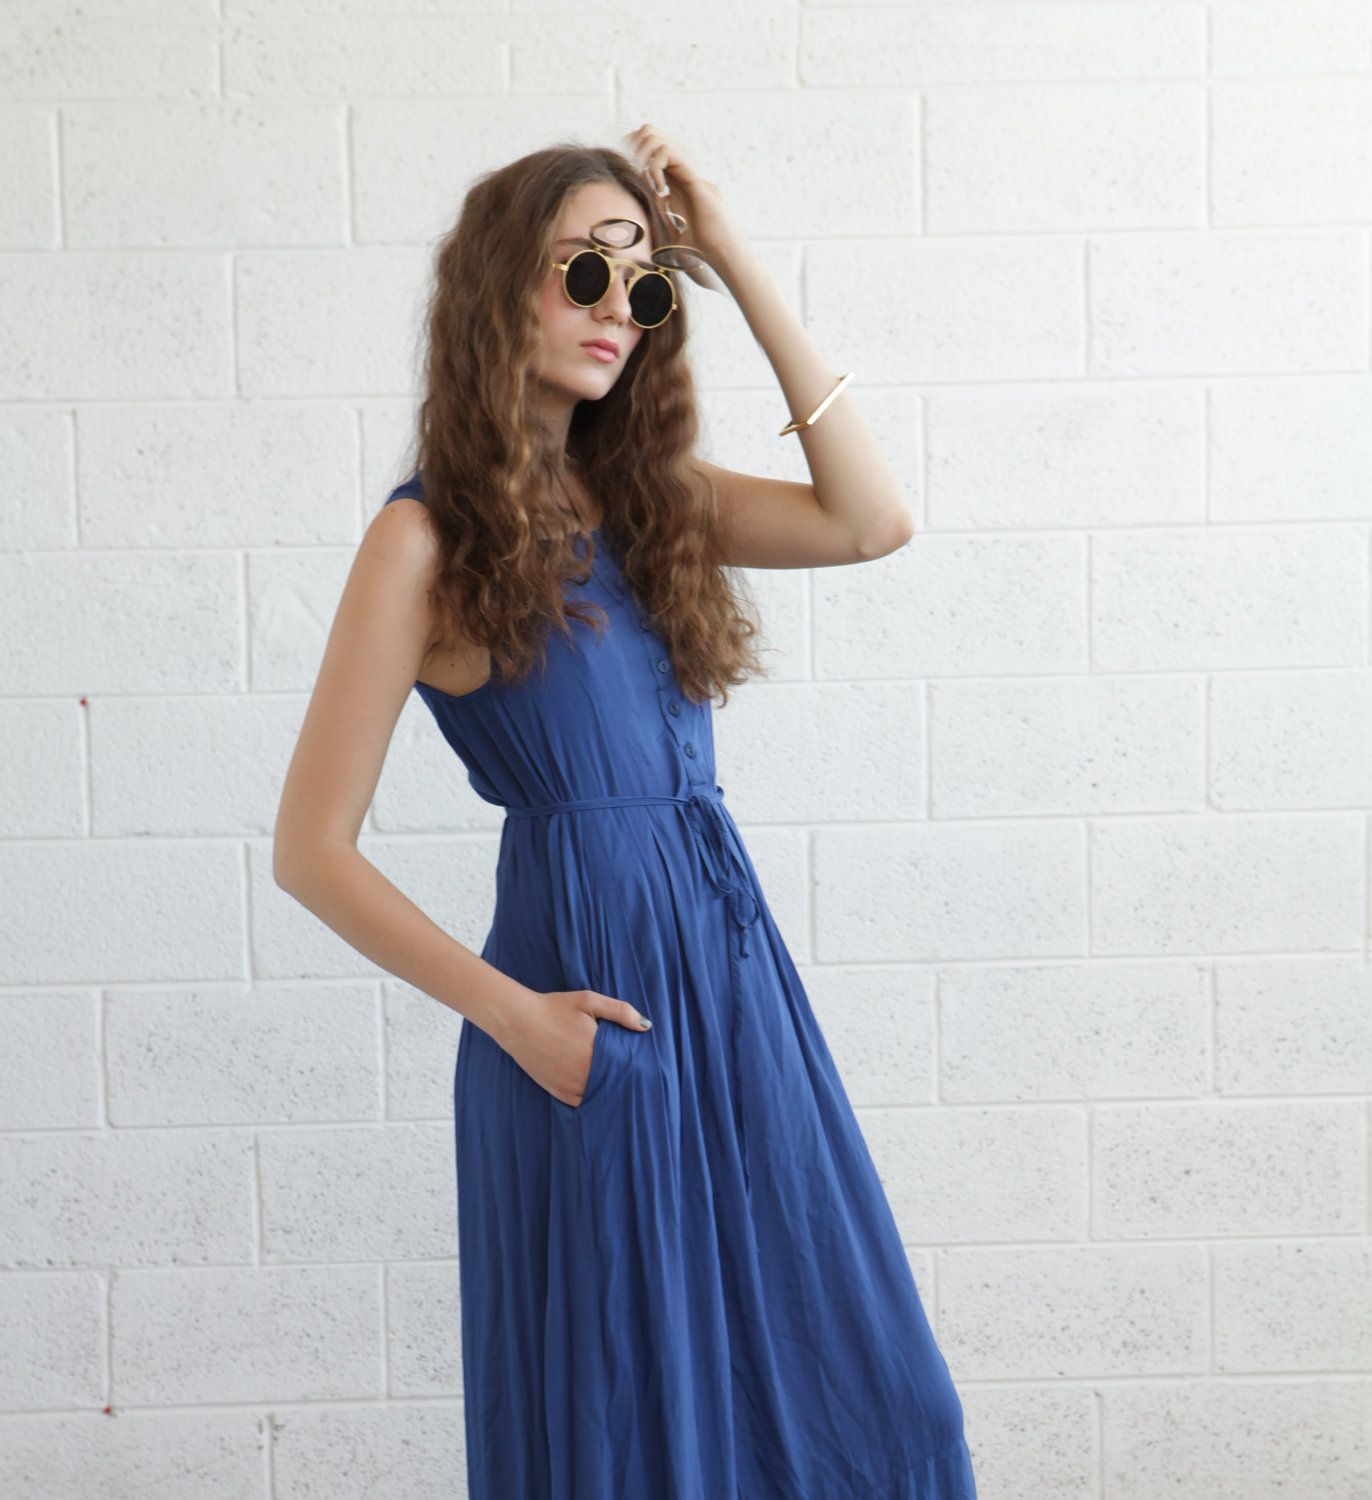 Navy blue maxi dress t h r e a d s m e t a l s pinterest